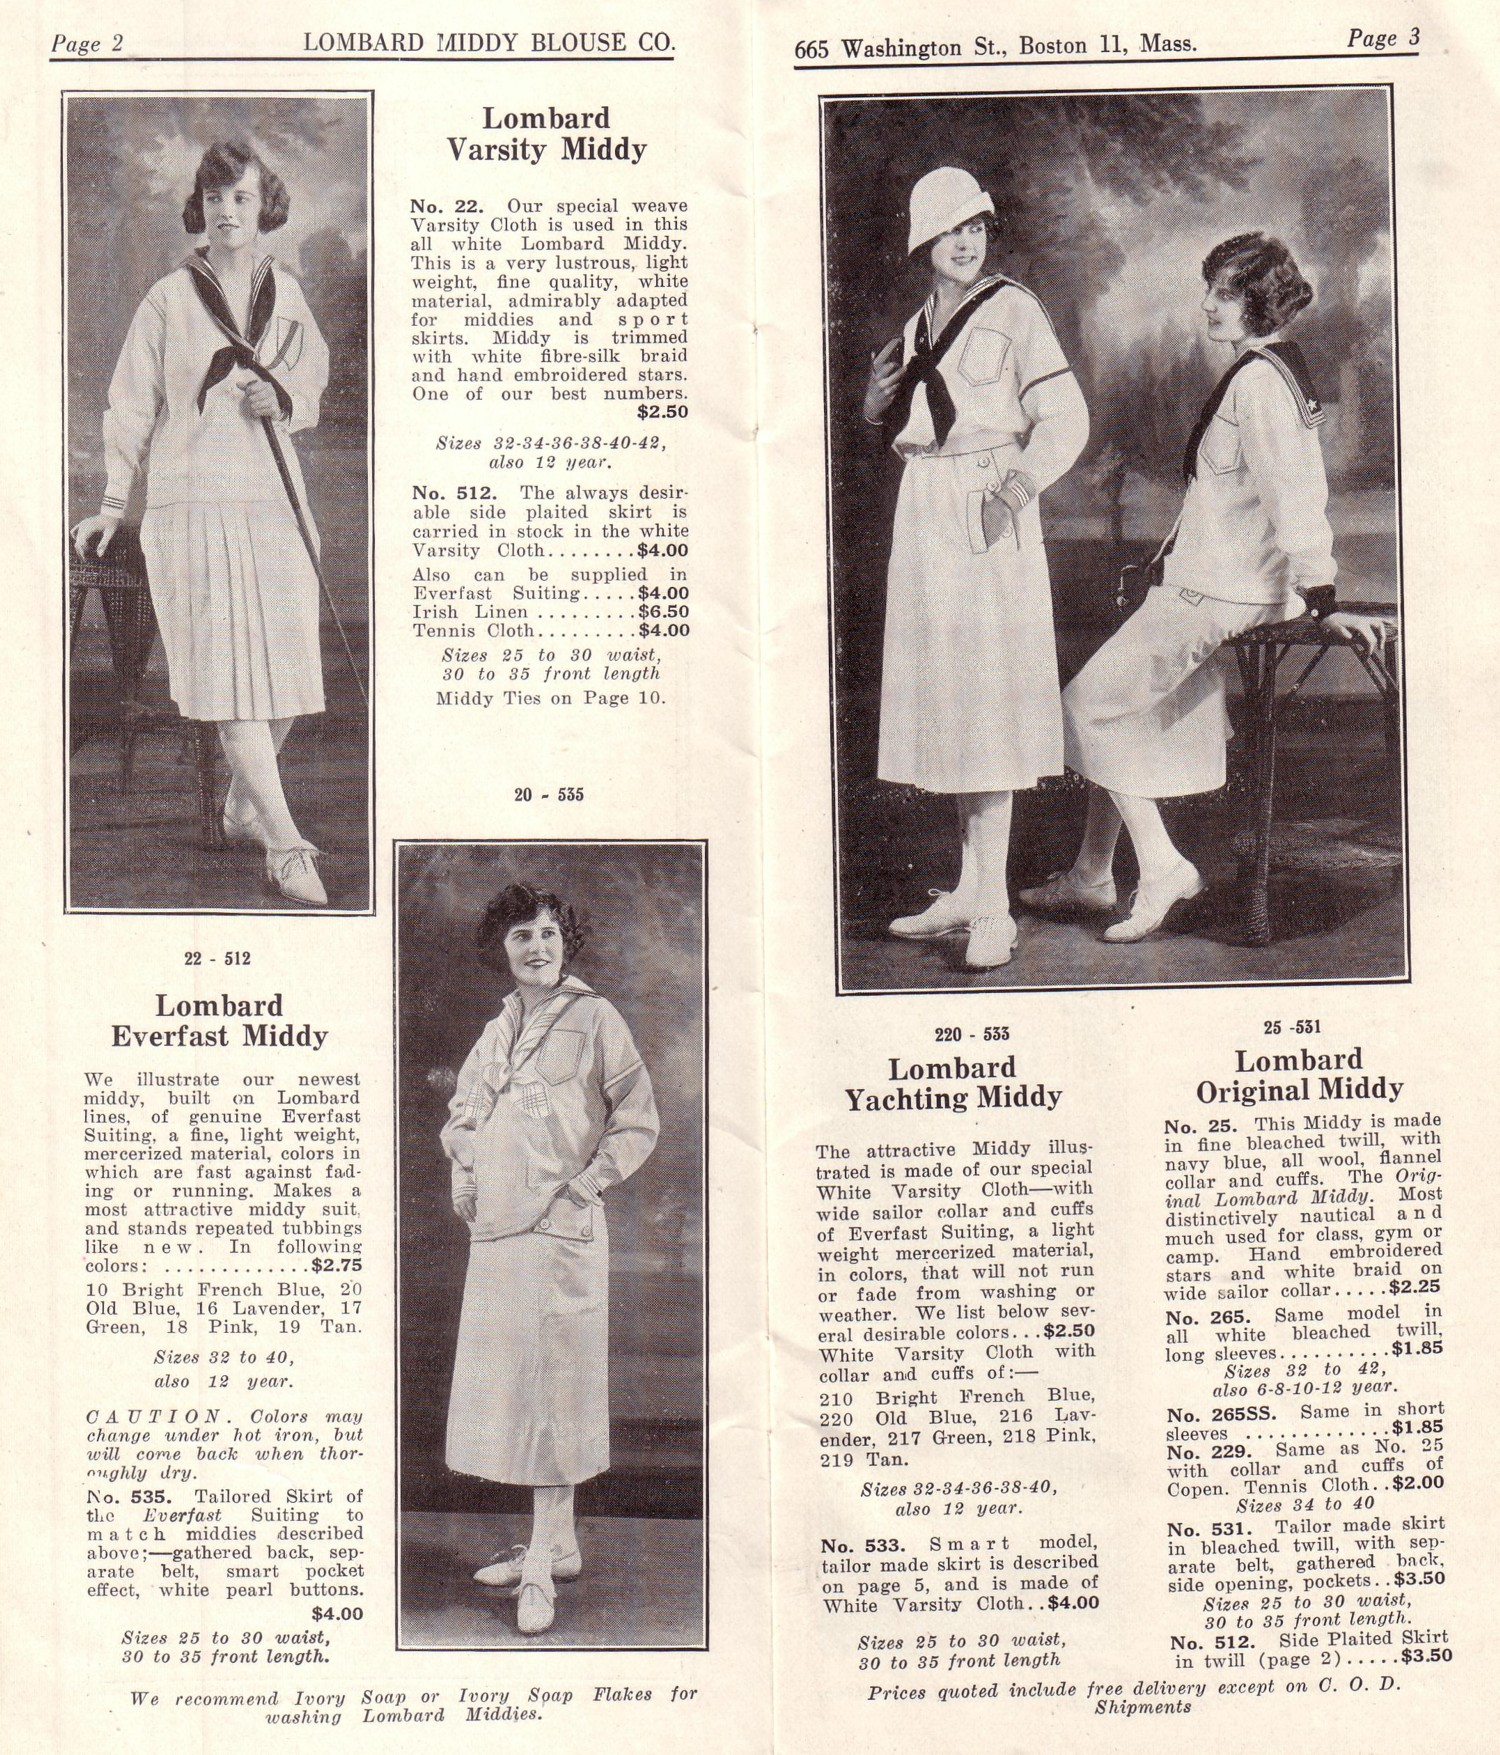 lombard middy blouses for the college the vintage traveler